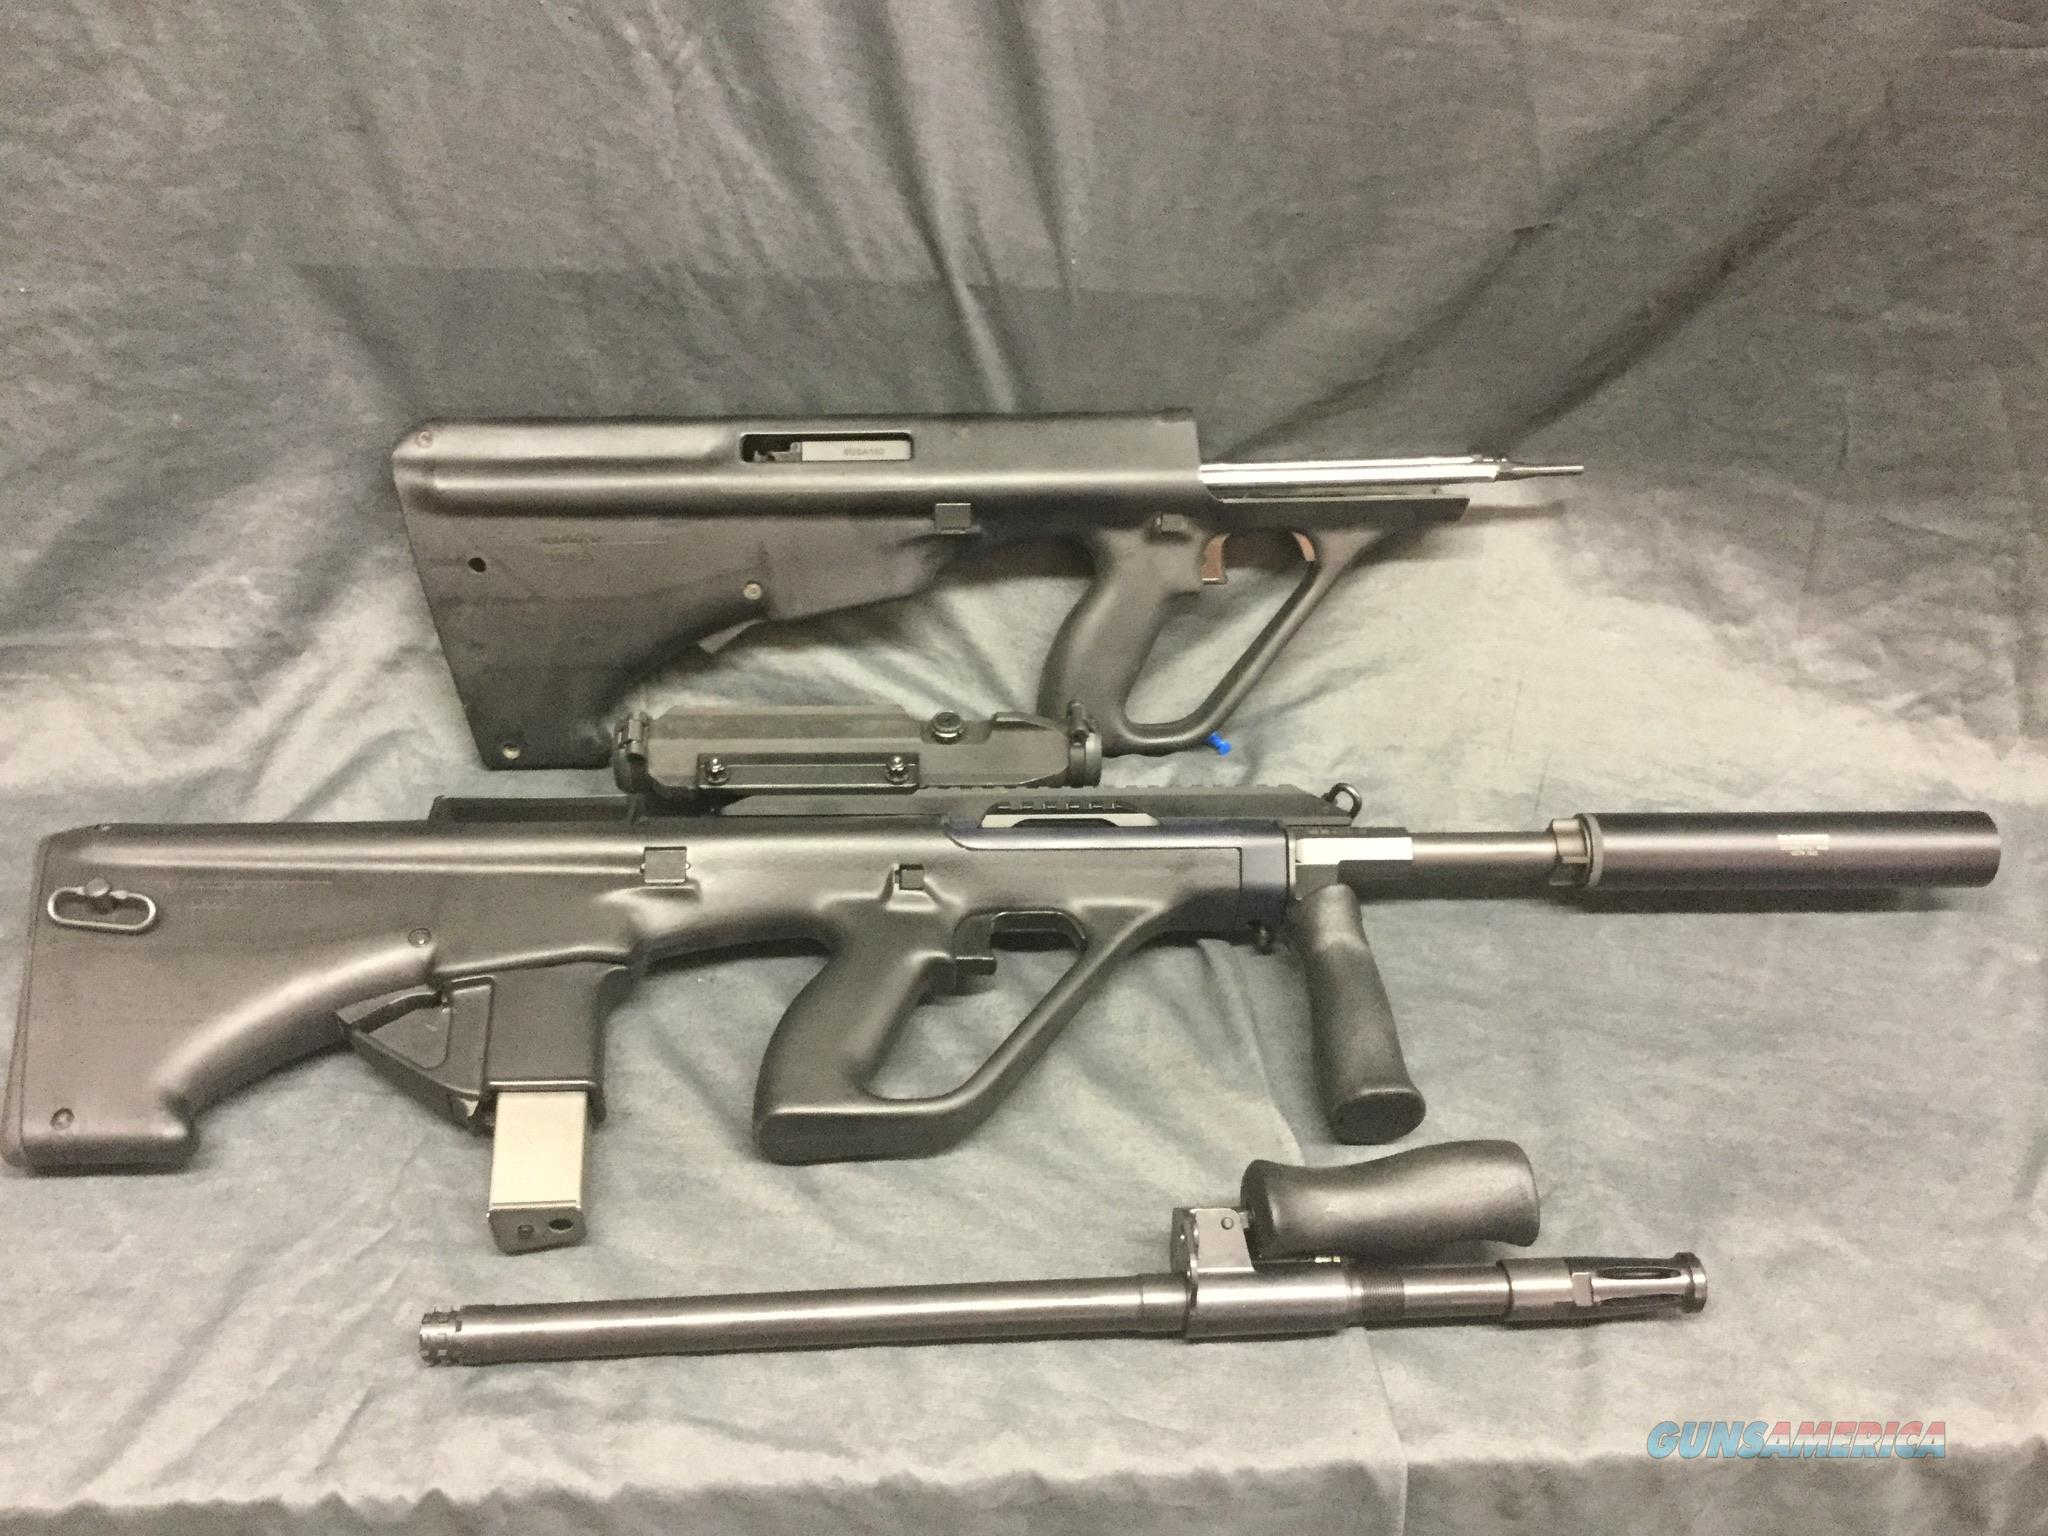 9mm AUG Conversion with a 223 AUG and Factory Scope  Guns > Rifles > Steyr Rifles